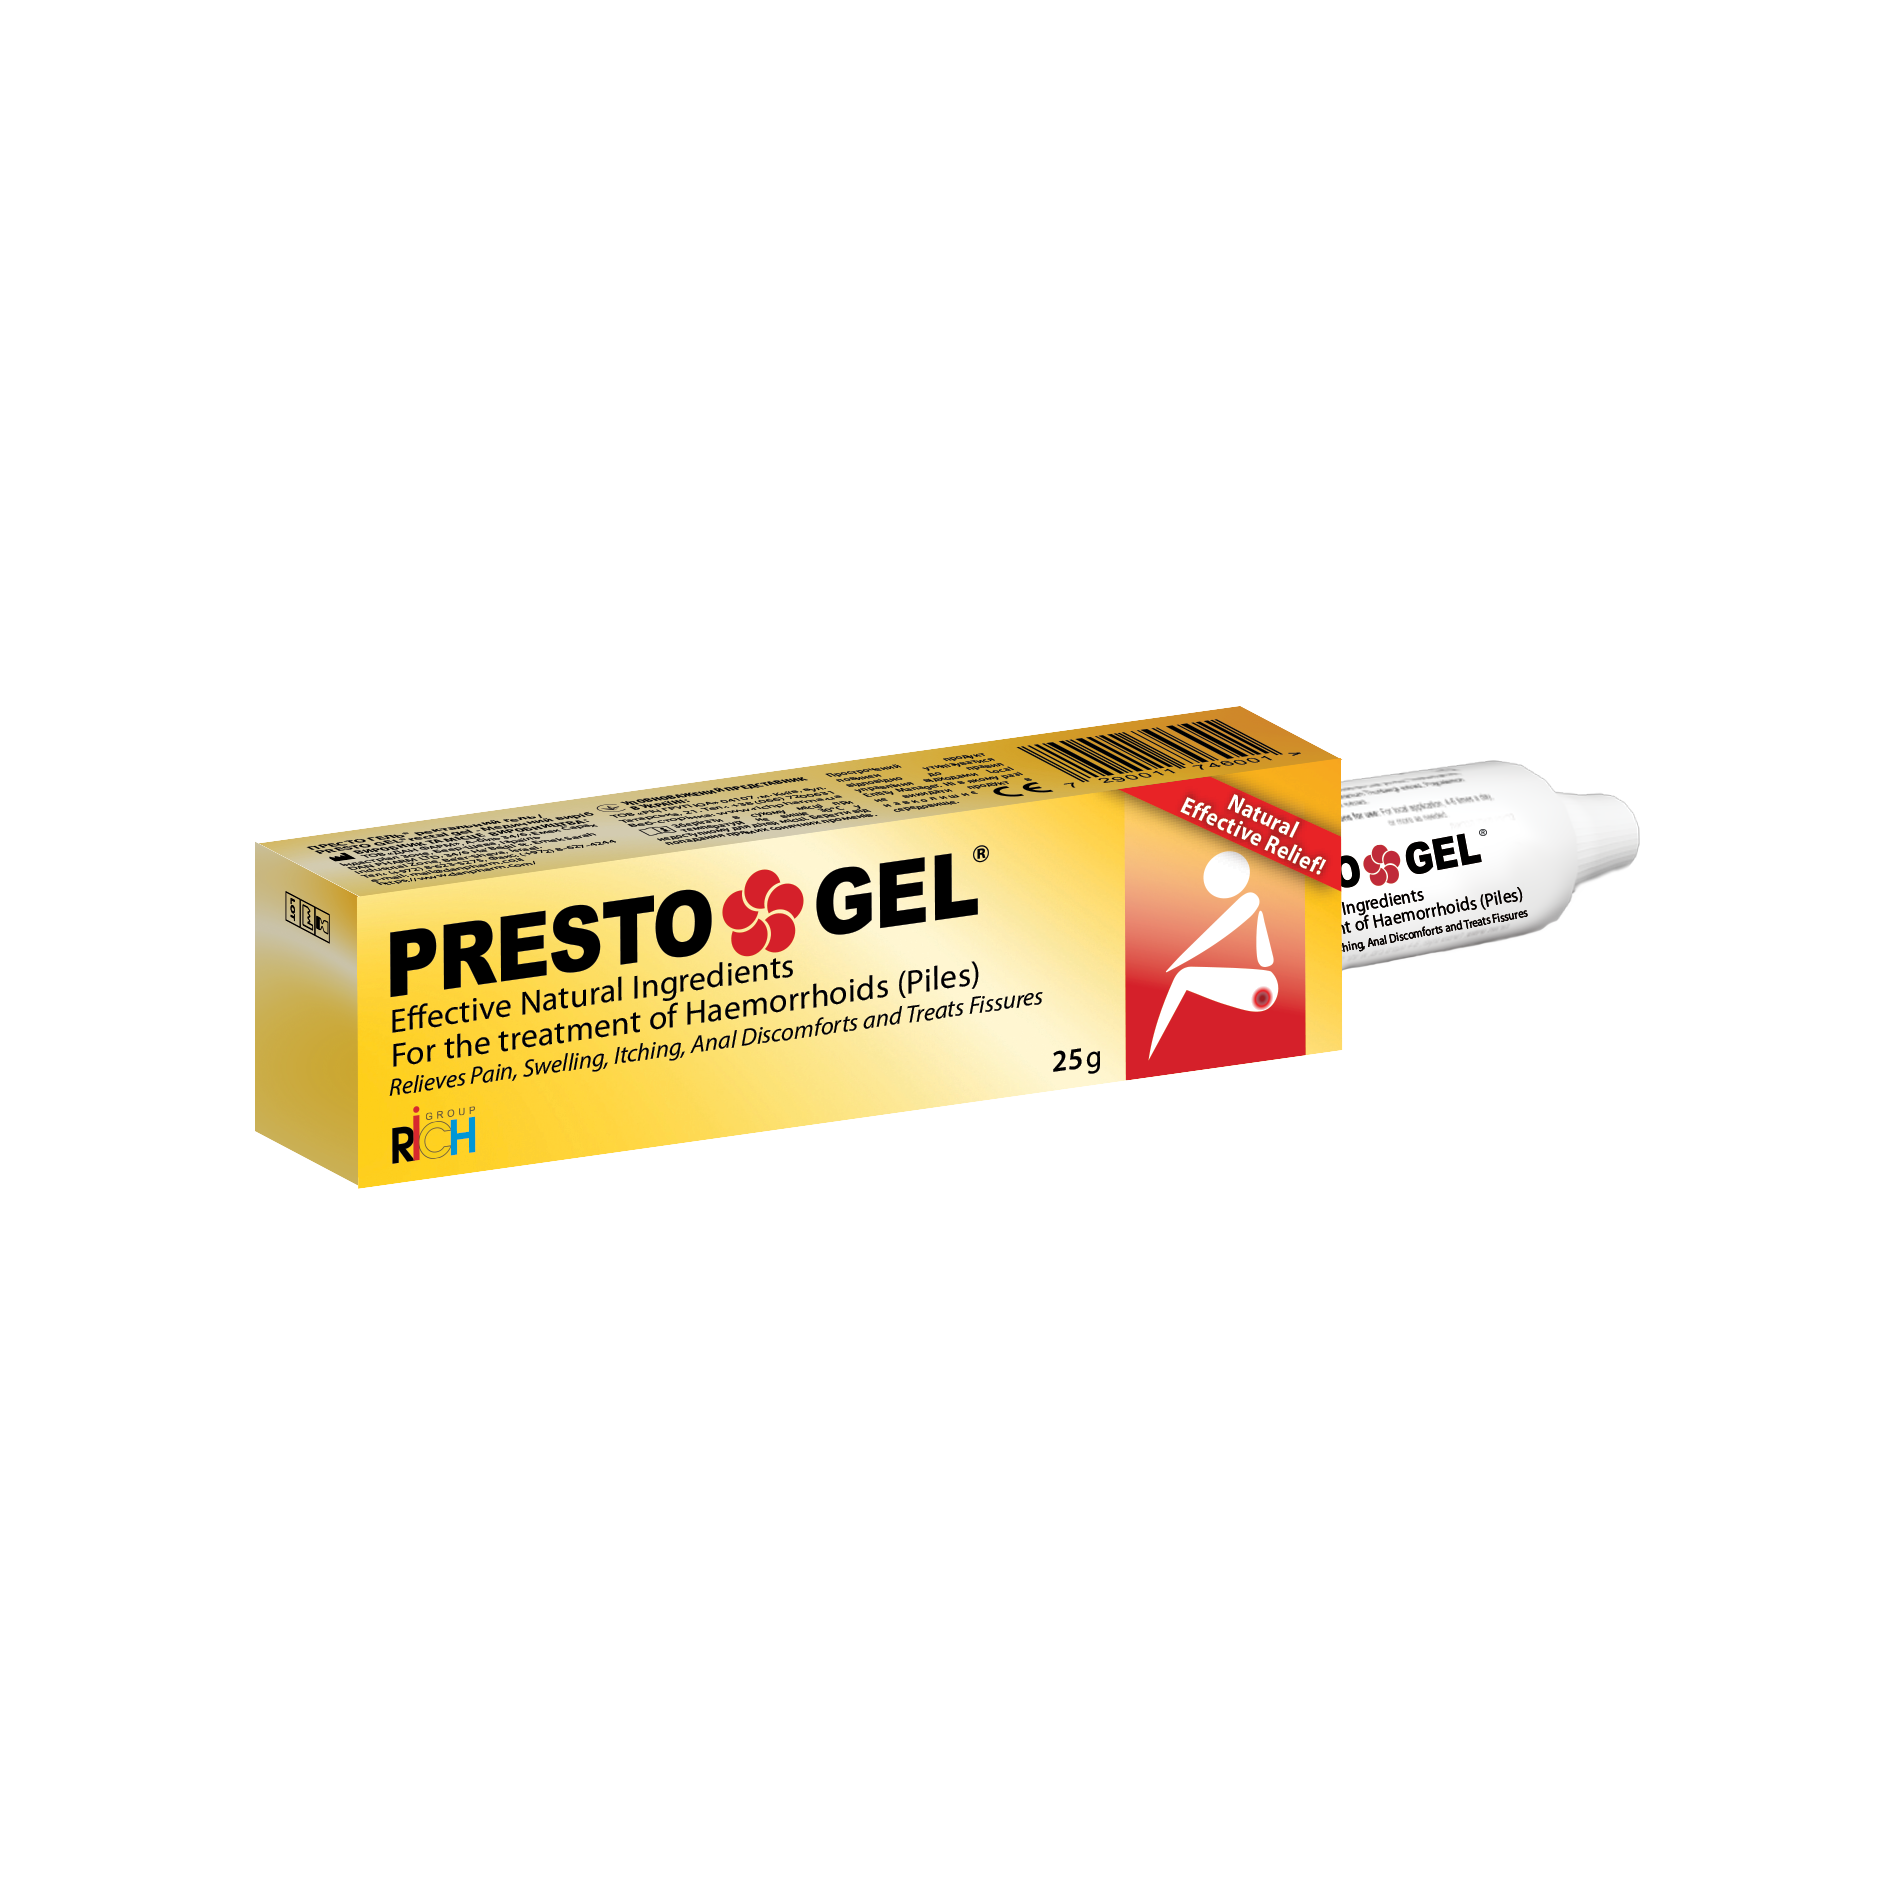 Presto Gel (gel) Ukraine (Medical Device) - English Versiond